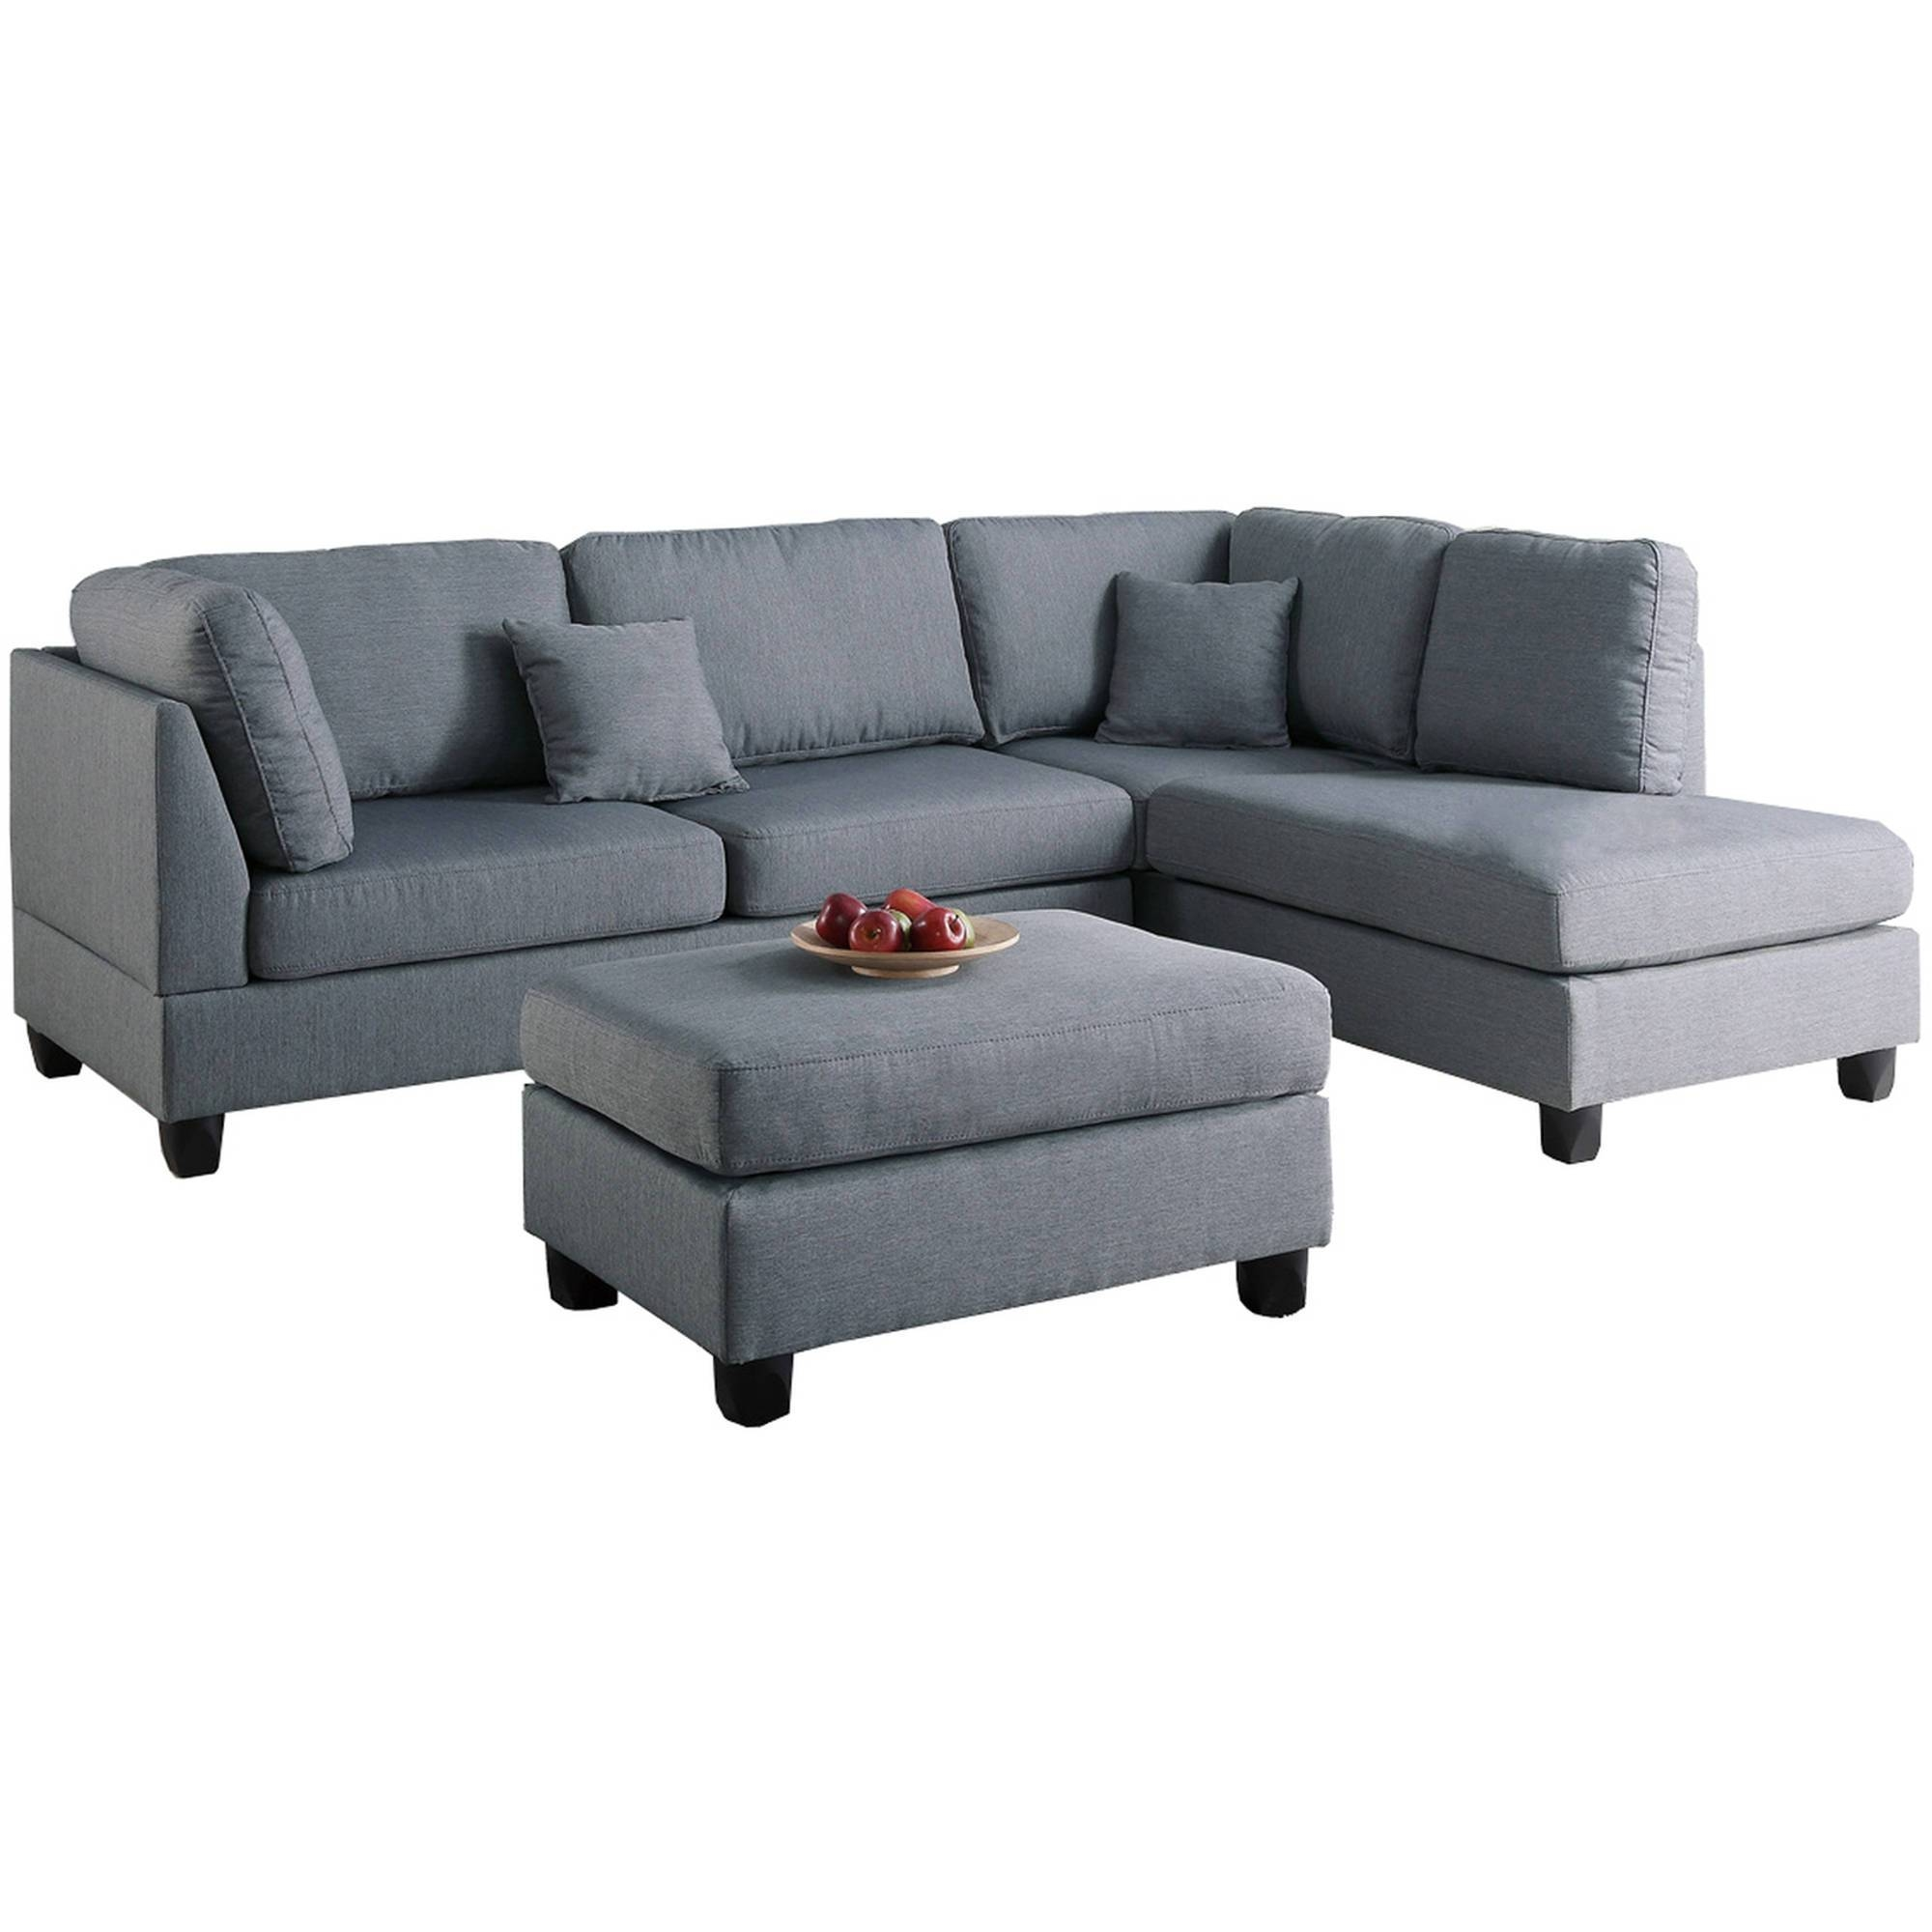 Living Room Furniture with Wallmart Sofa (Image 15 of 25)